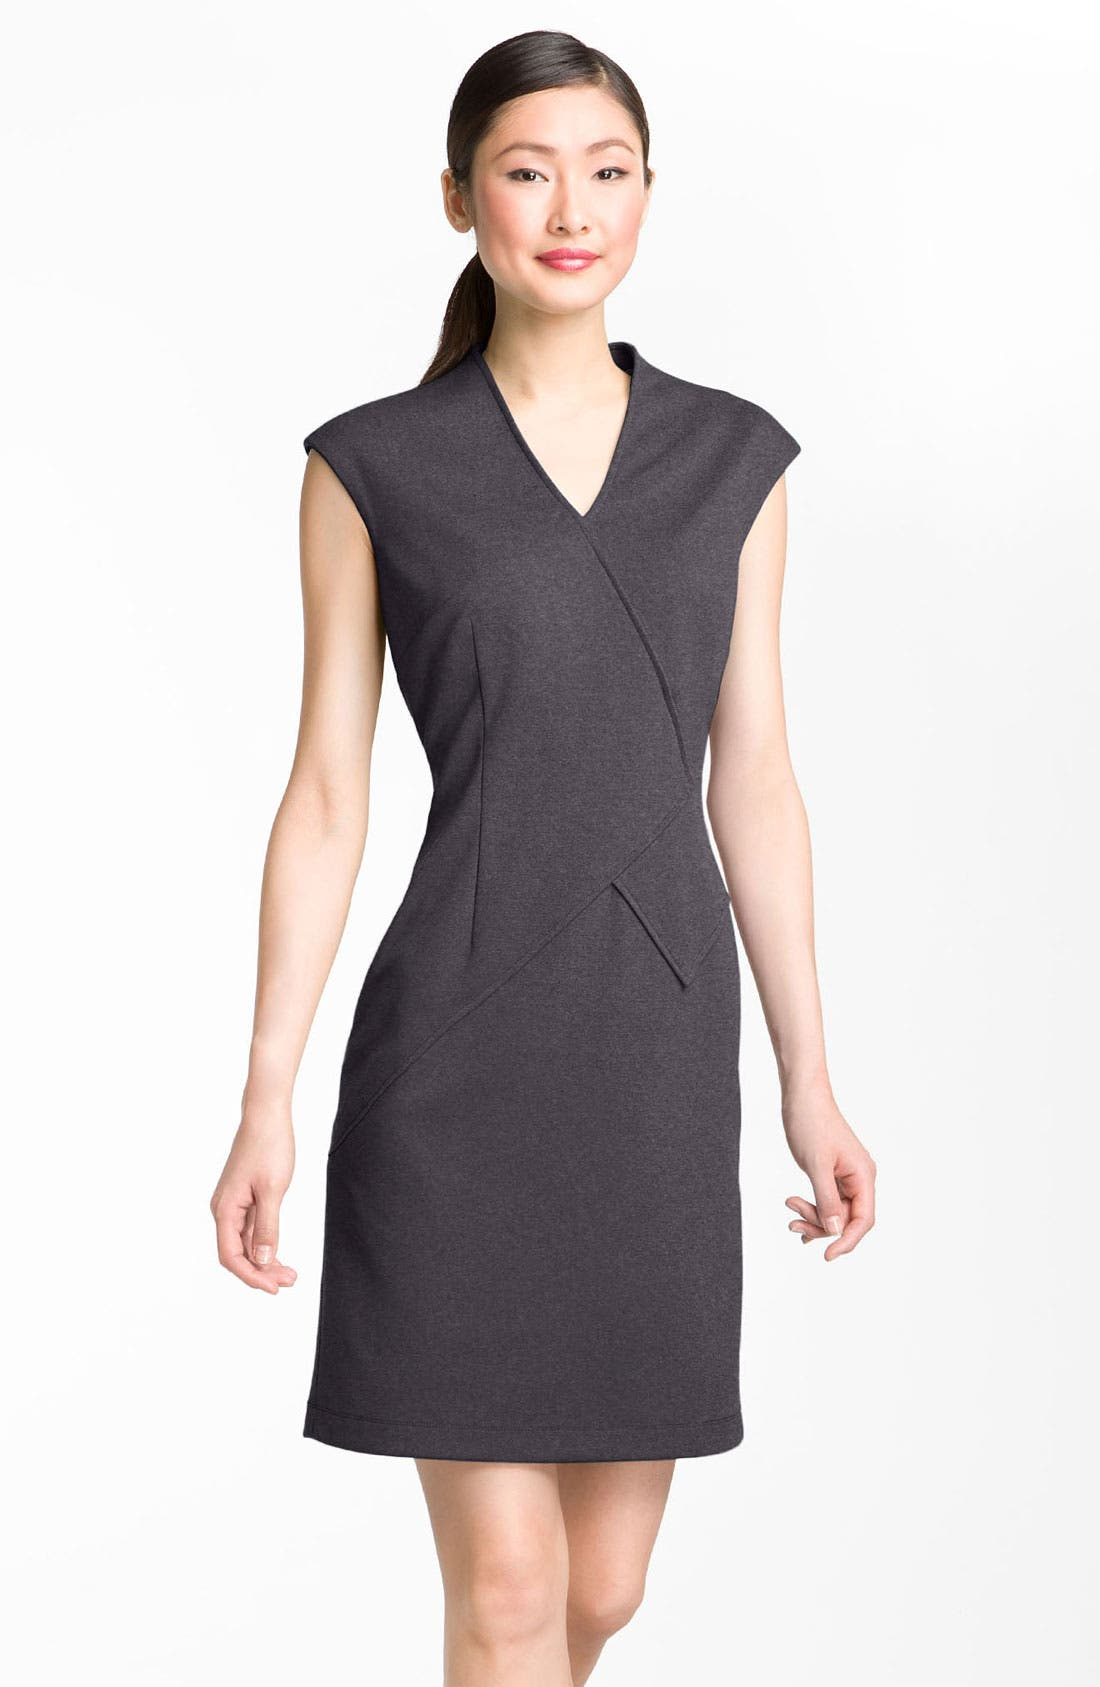 Alternate Image 1 Selected - Calvin Klein Seamed Ponte Knit Sheath Dress